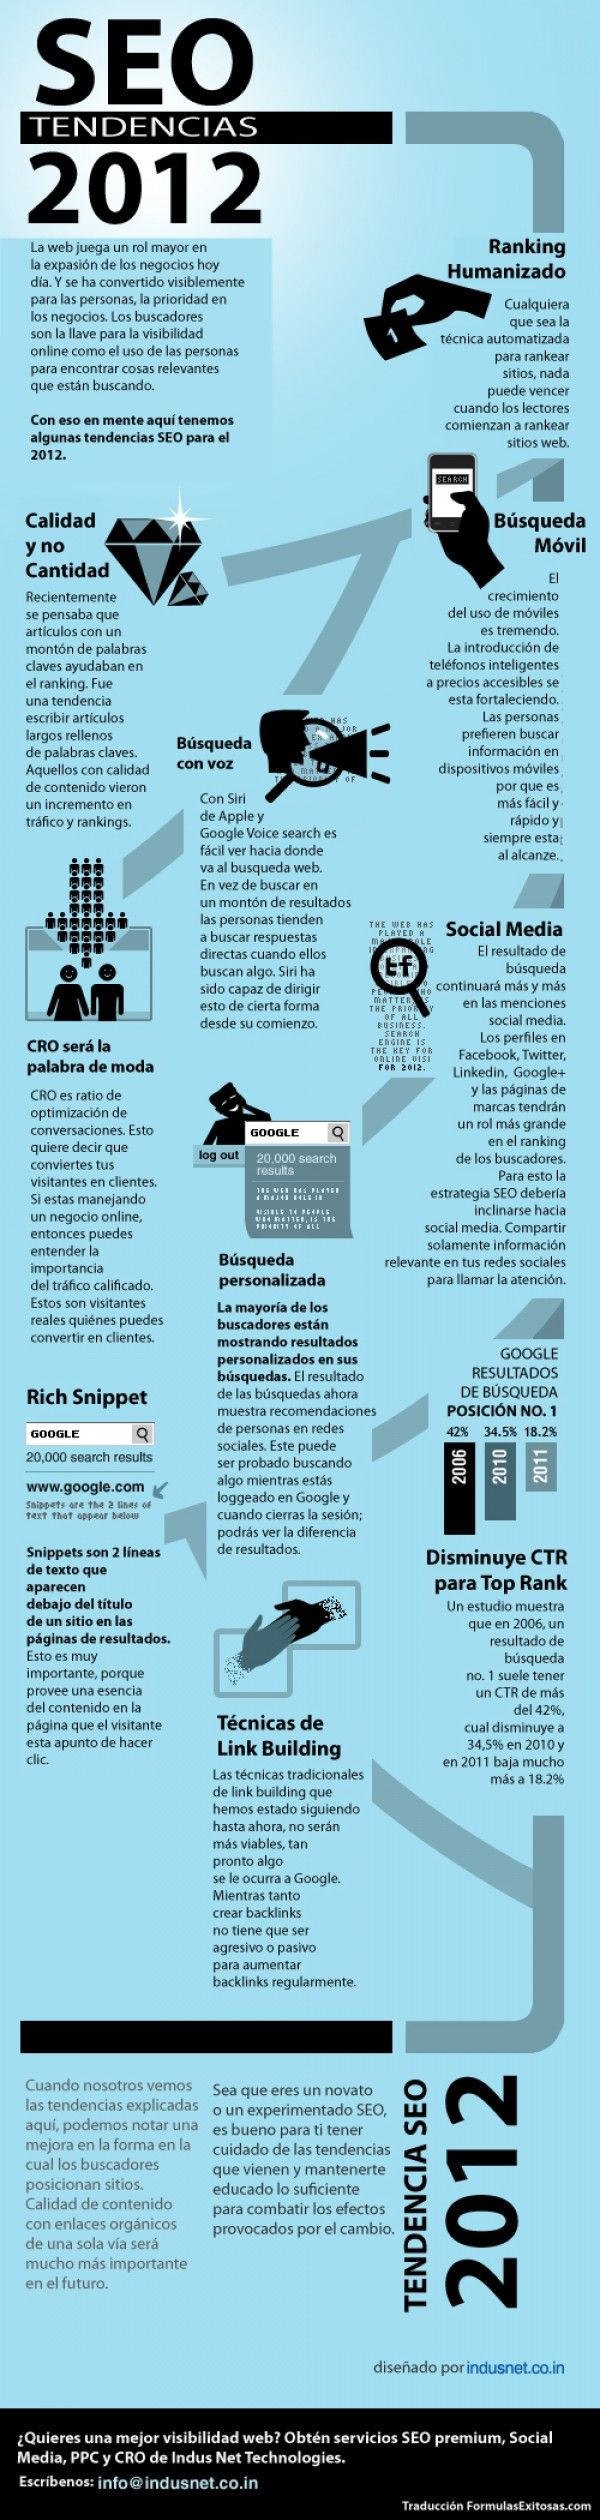 Tendencias SEO para 2012 - #Infografia en español #SEO  We love SEO and infographics. Come visit us in Vienna, Austria or at http://www.ostheimer.at